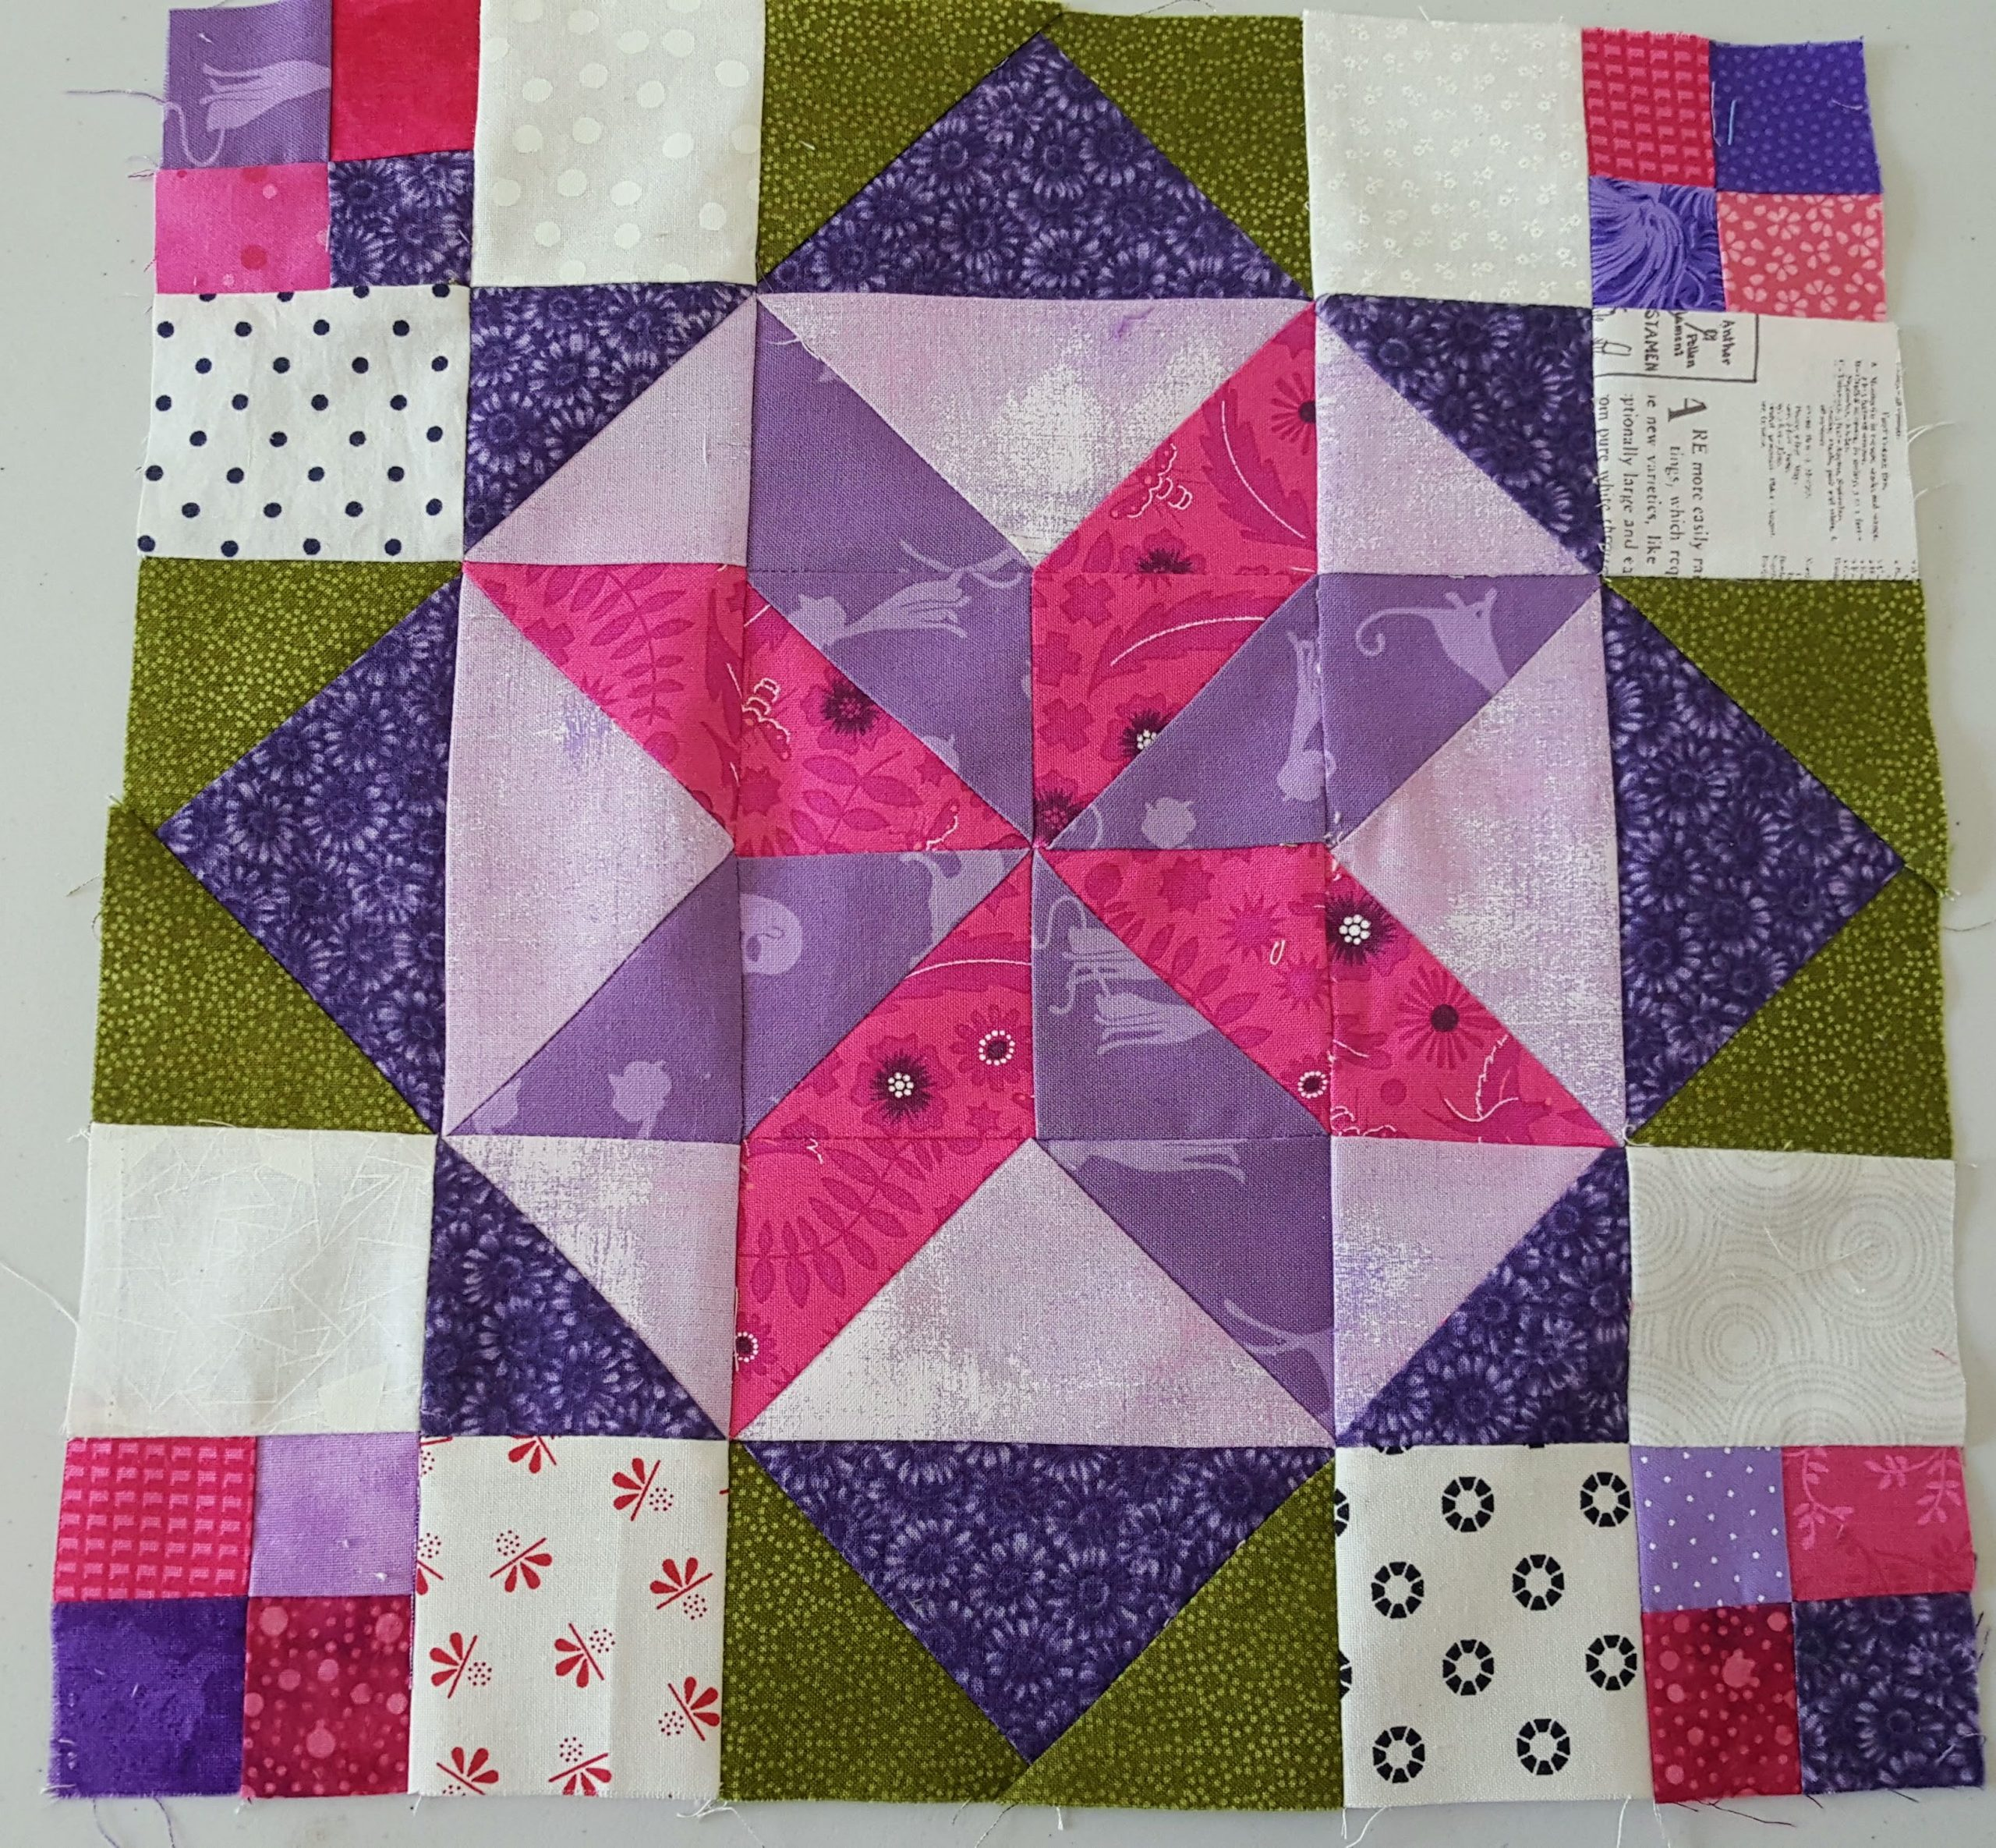 frolic quilt in progress